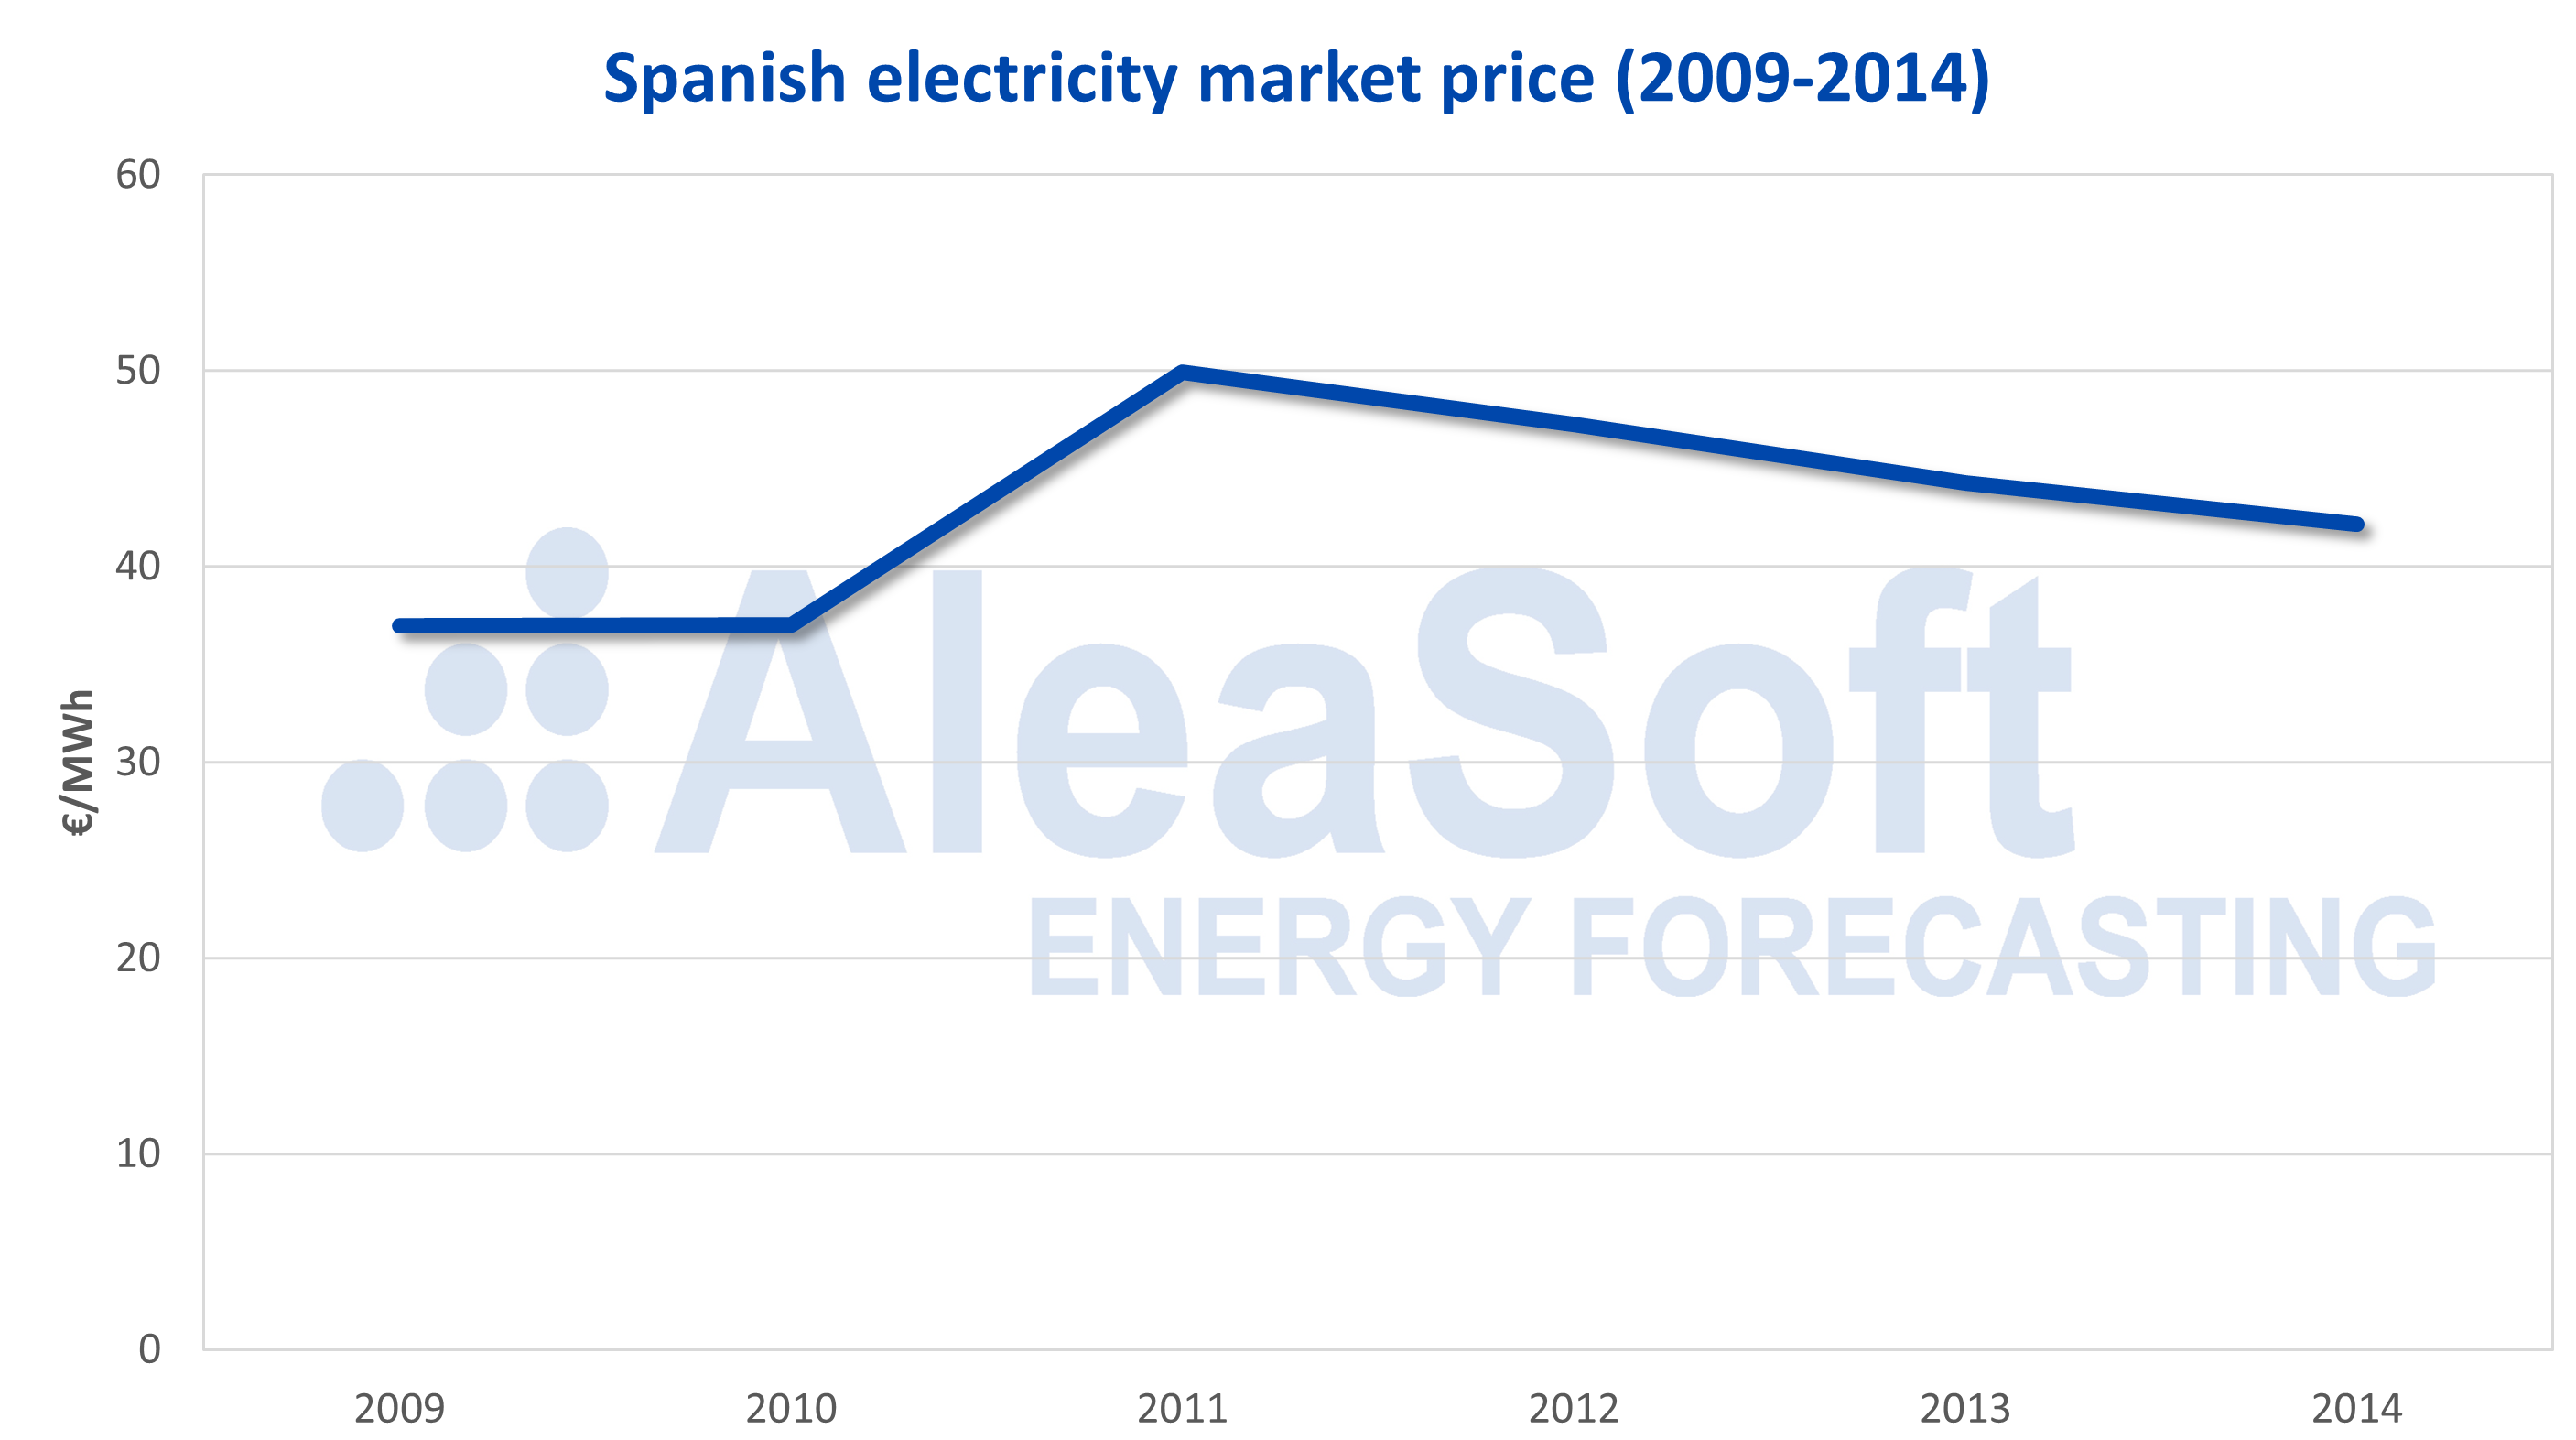 AleaSoft - Spanish electricity market price